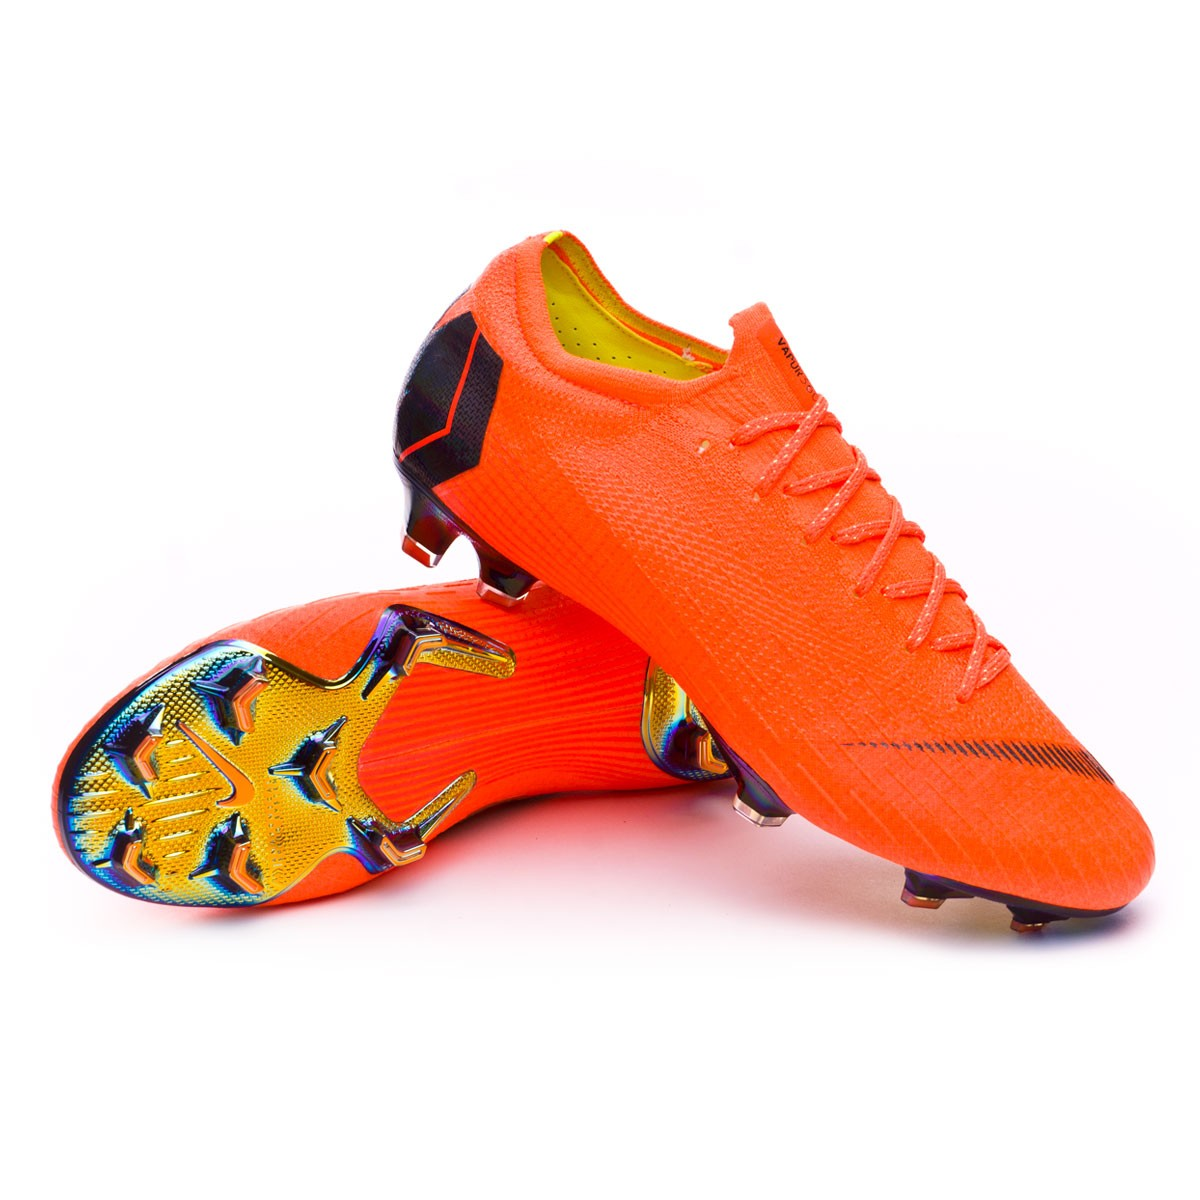 6ac870e2070 Boot Nike Mercurial Vapor XII Elite FG Total orange-Black-Volt ...